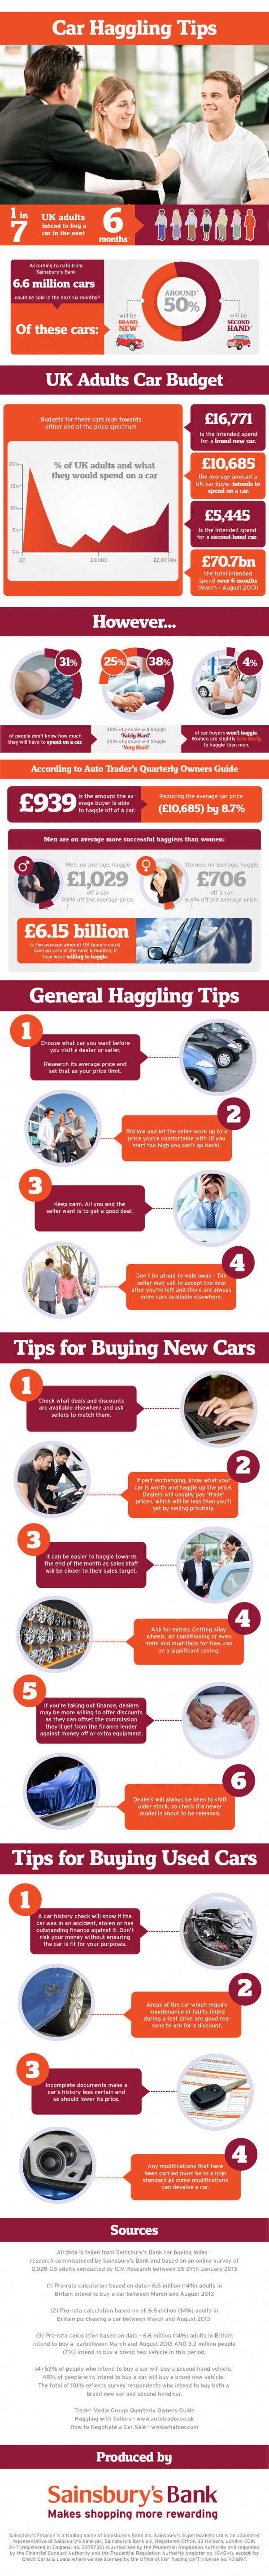 Car Haggling Tips